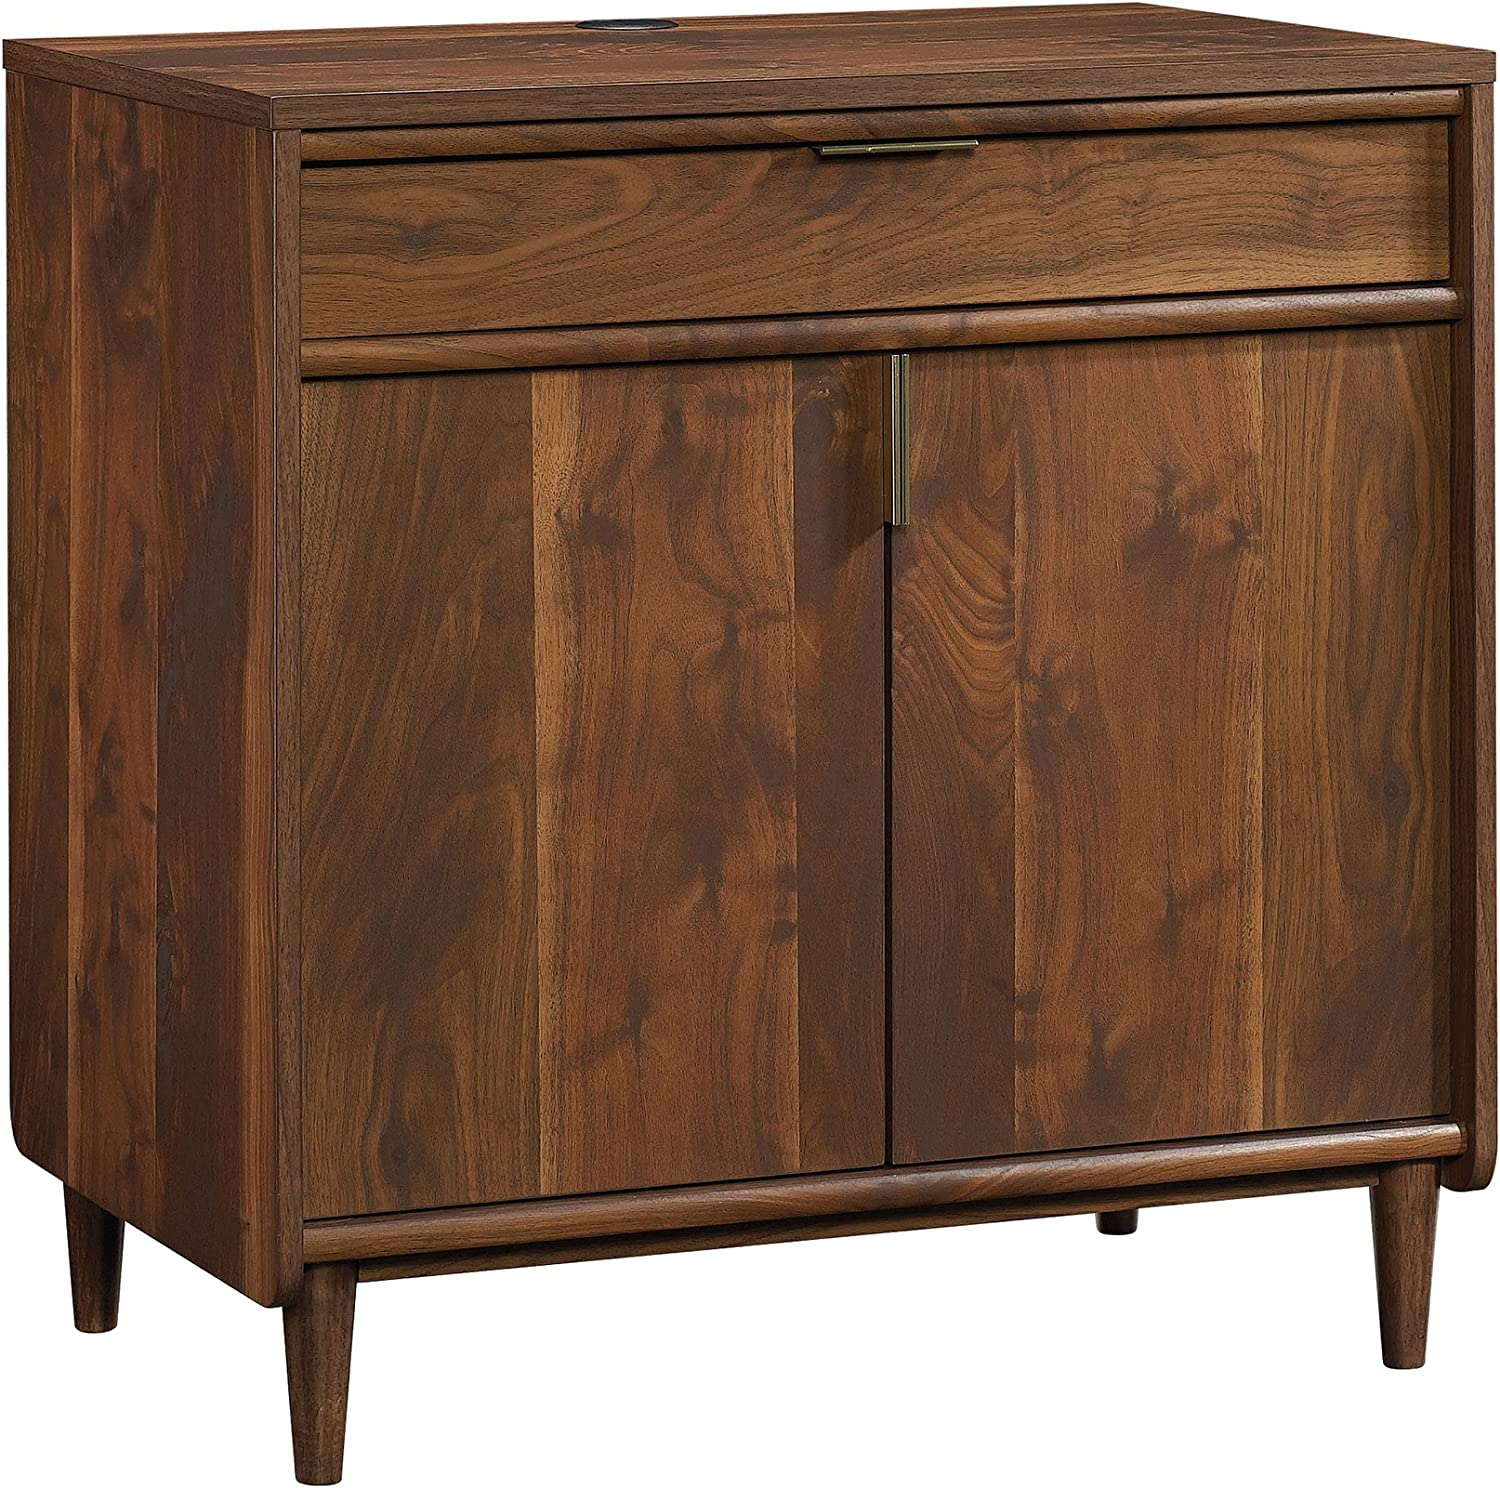 Sauder Clifford Place Library Base, Grand Walnut finish